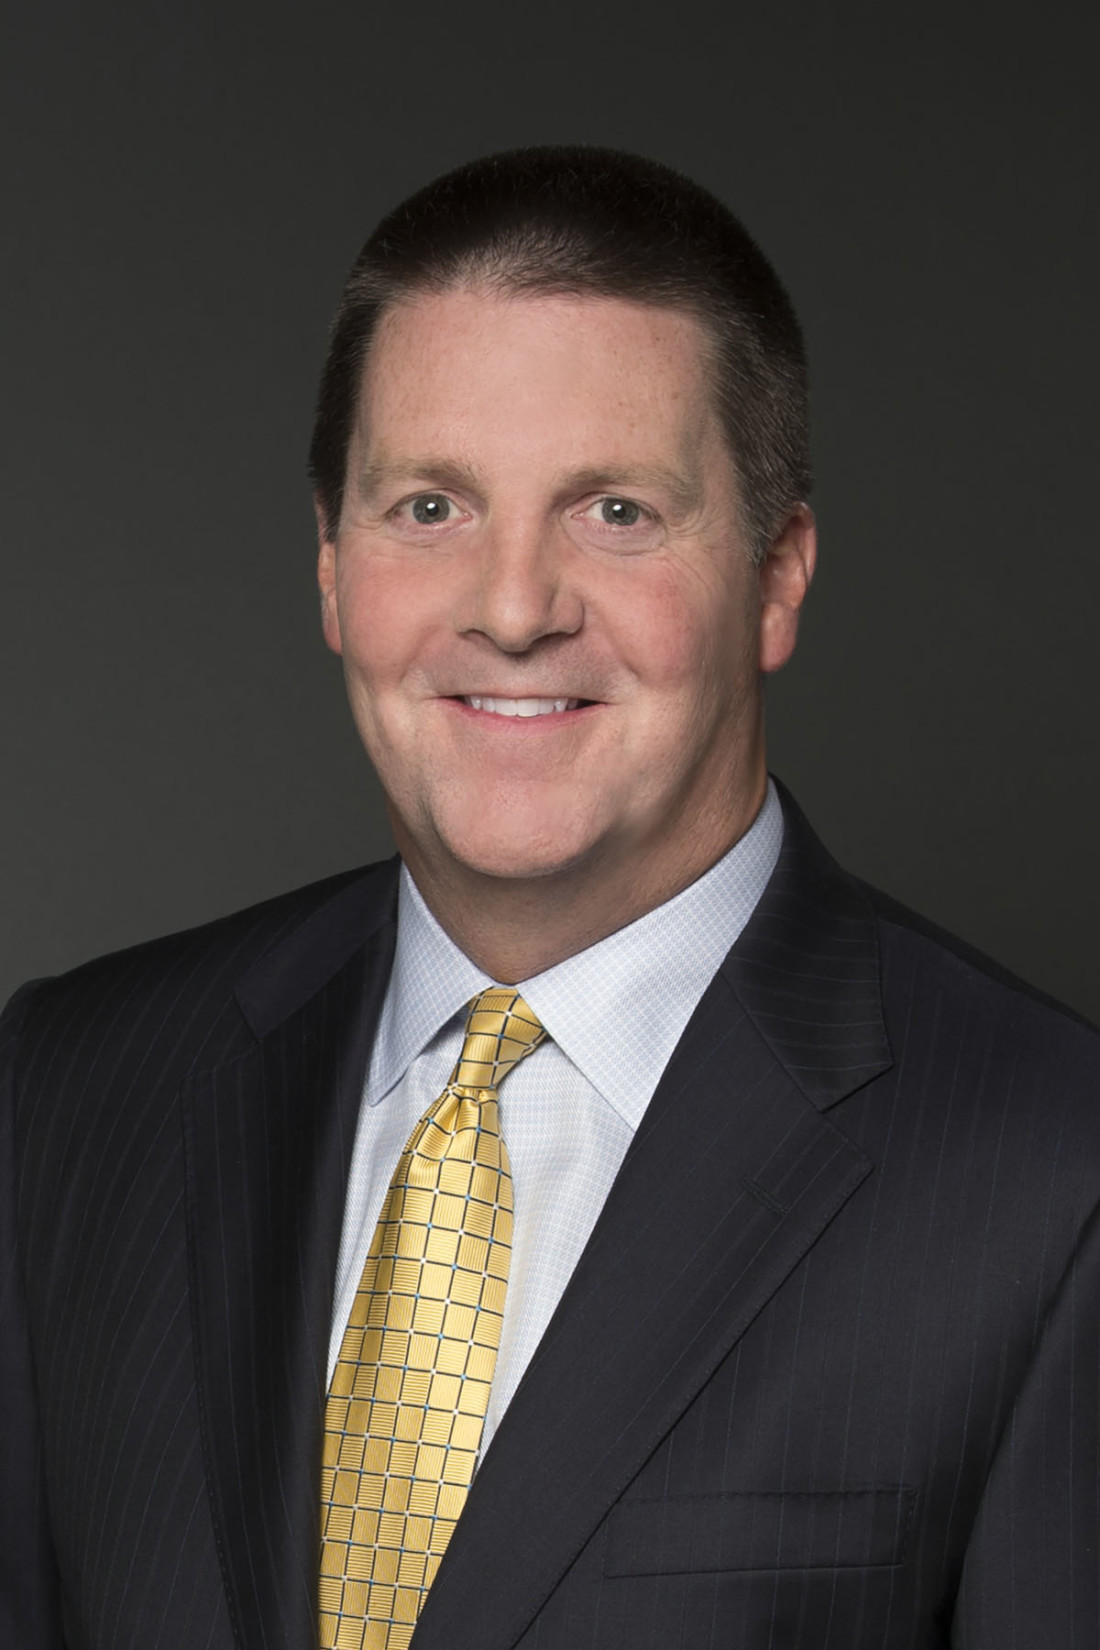 Managing Partner Keith Donovan